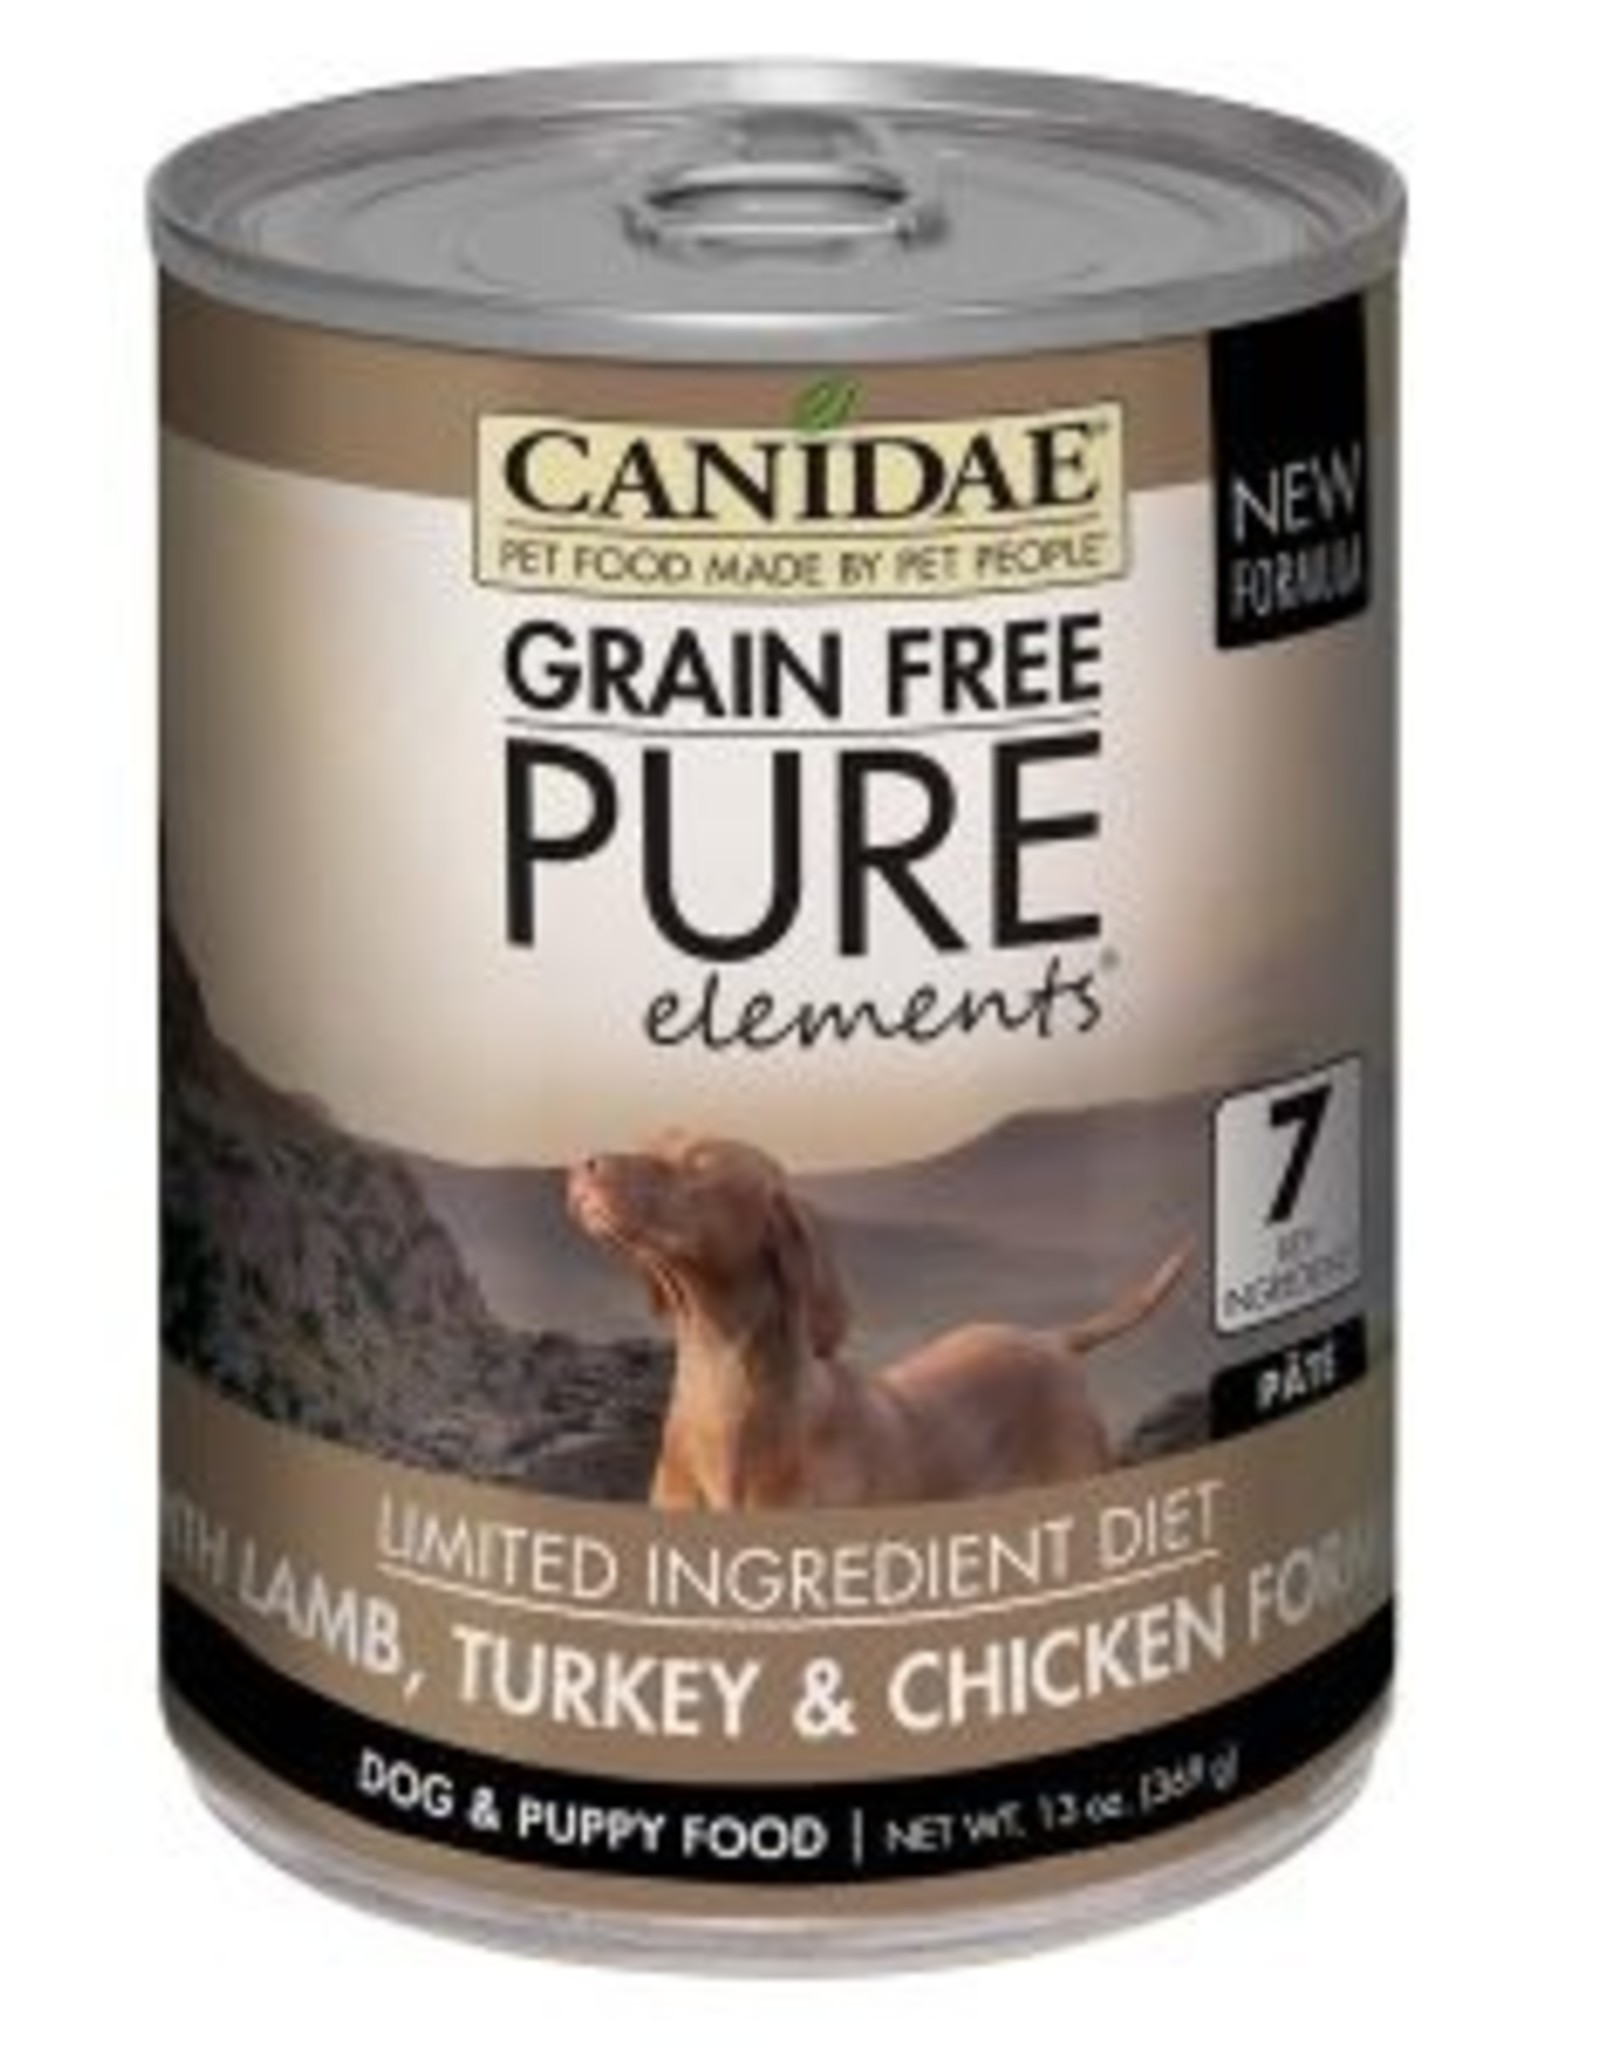 CANIDAE PET FOODS CANIDAE DOG CAN PURE ELEMENTS LAMB TURKEY CHICKEN 13 OZ CASE OF 12